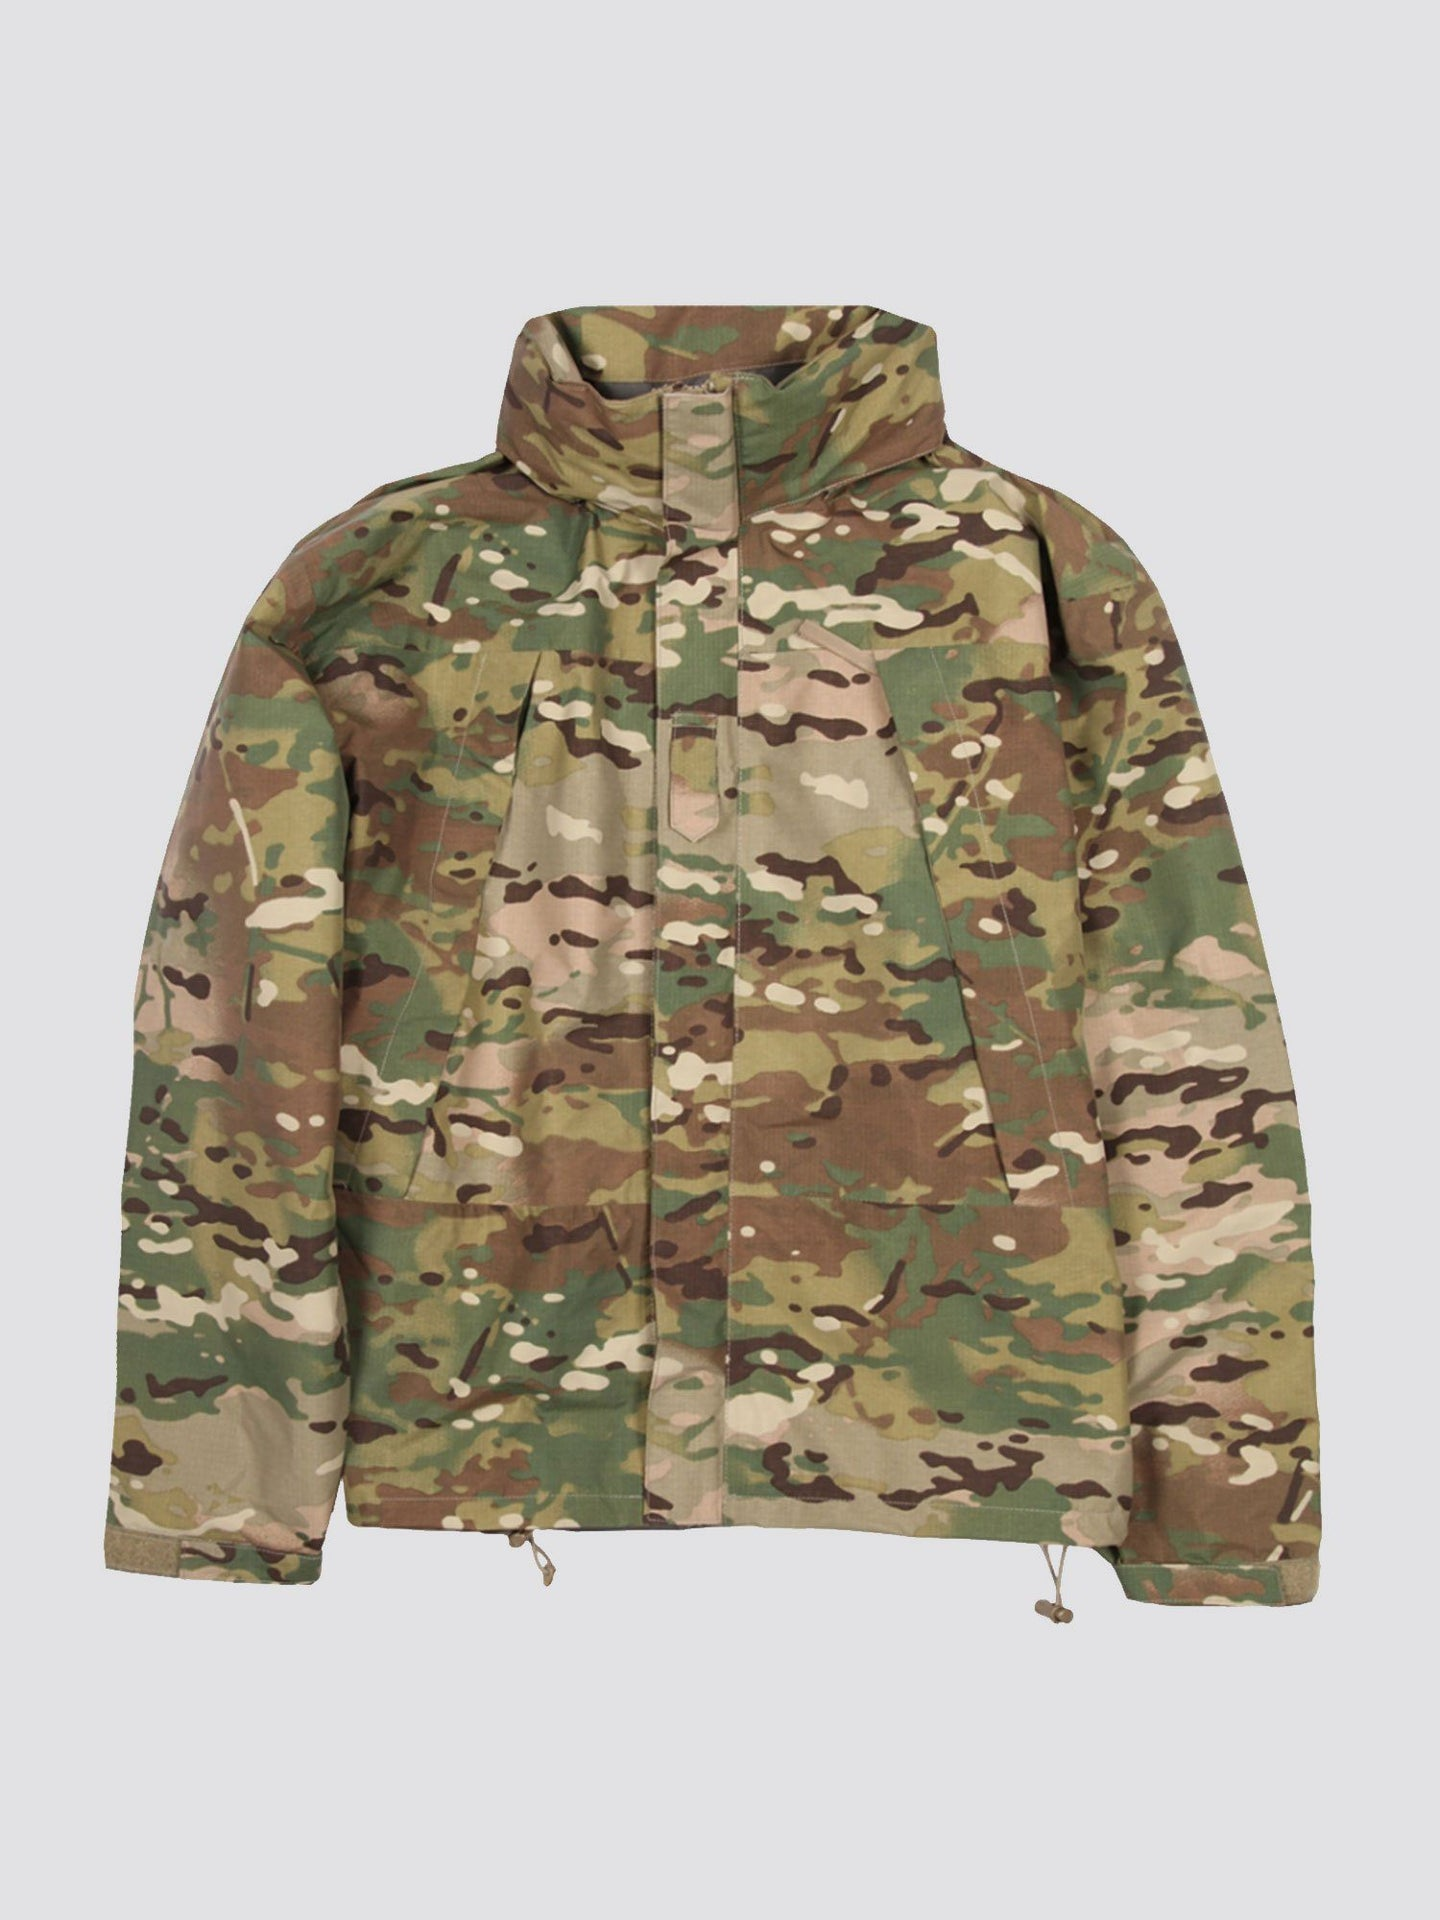 MULTICAM PARKA GEN 3 LAYER 6 OUTERWEAR Alpha Industries MULTI-CAMO L